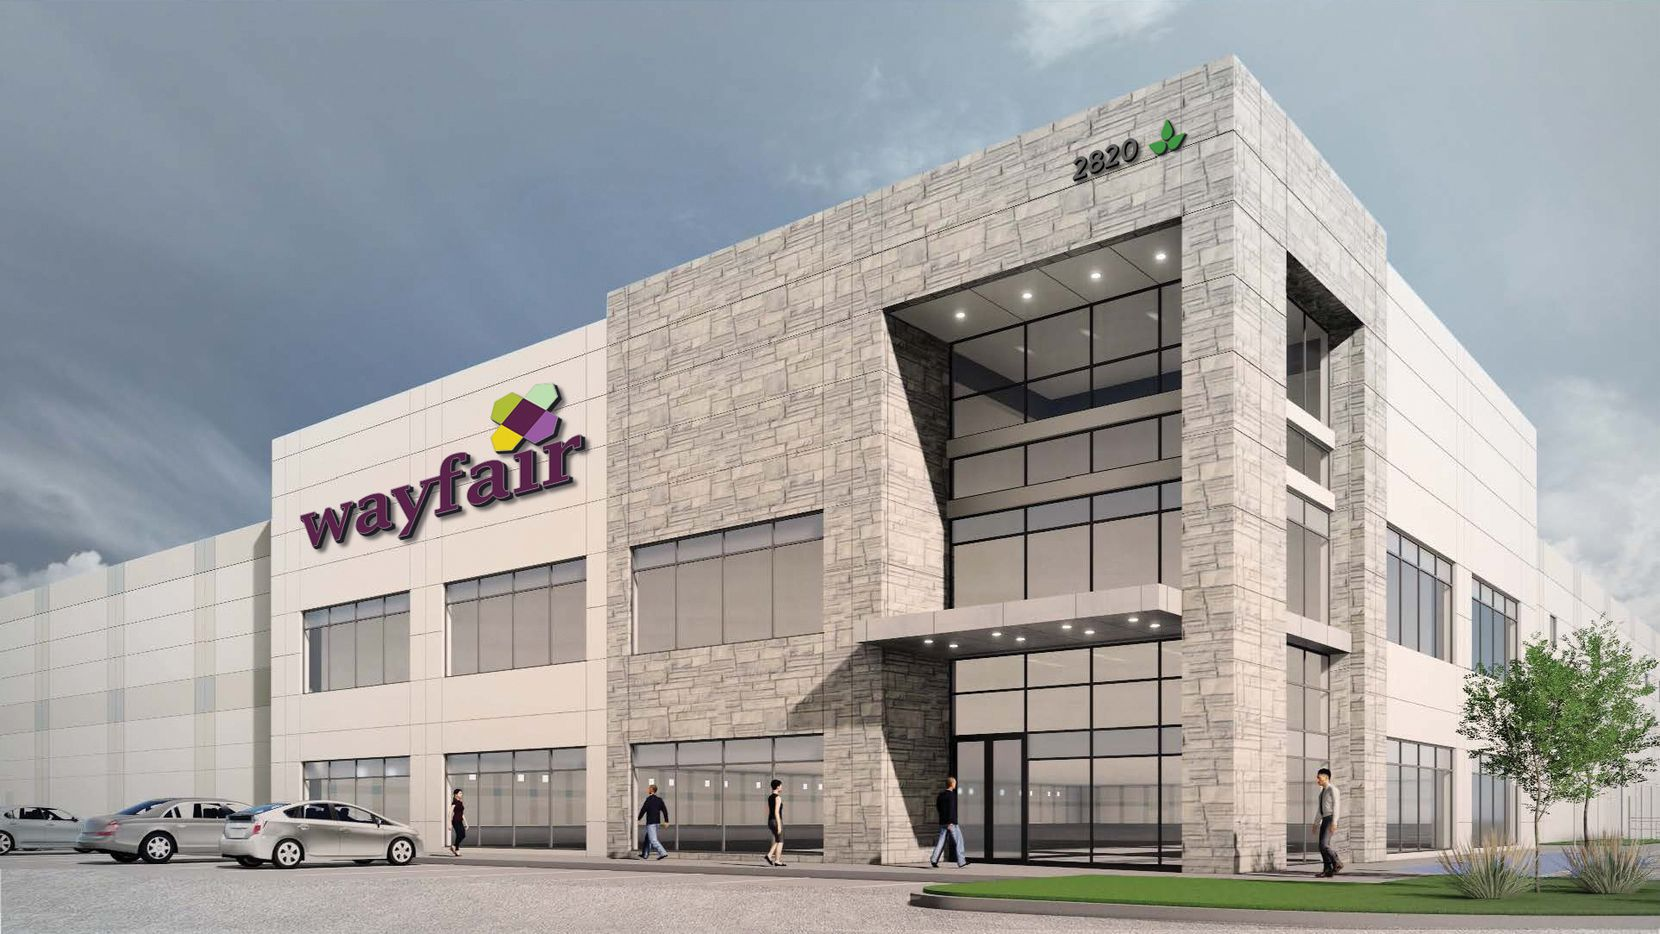 Wayfair is locating a new regional shipping hub in Lancaster.